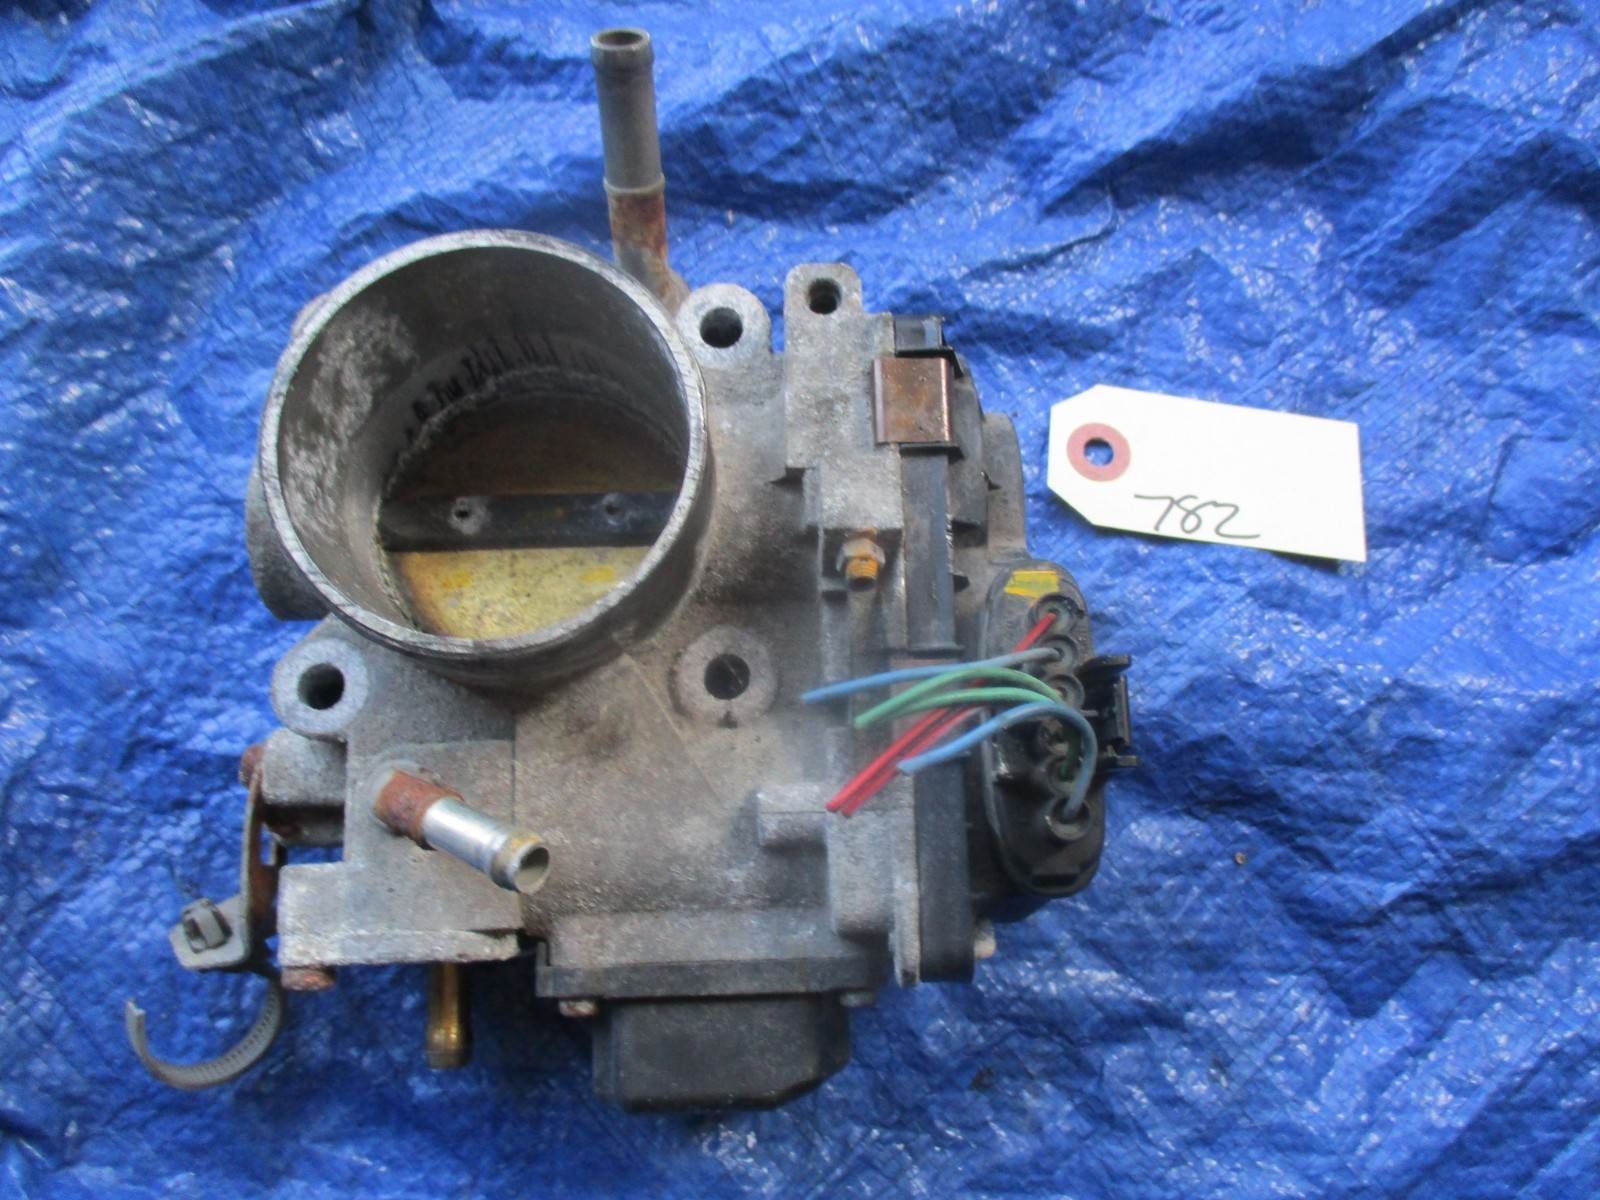 2004 Acura TSX K24A2 throttle body assembly OEM engine motor K24A base 782 GMB1A image 6